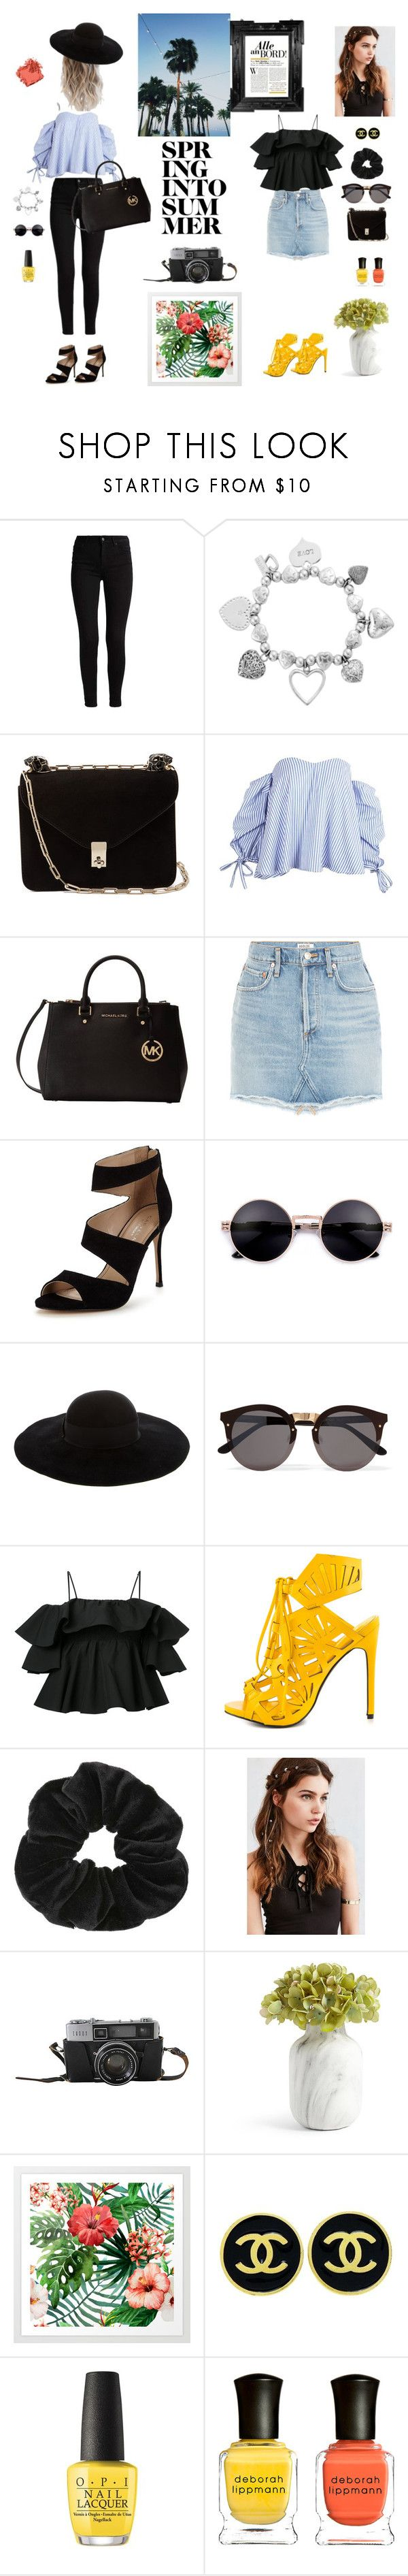 """Trends week 21!"" by linneaha on Polyvore featuring ChloBo, Valentino, Michael Kors, Carvela, Eugenia Kim, Illesteva, MSGM, Privileged, Miss Selfridge and REGALROSE"